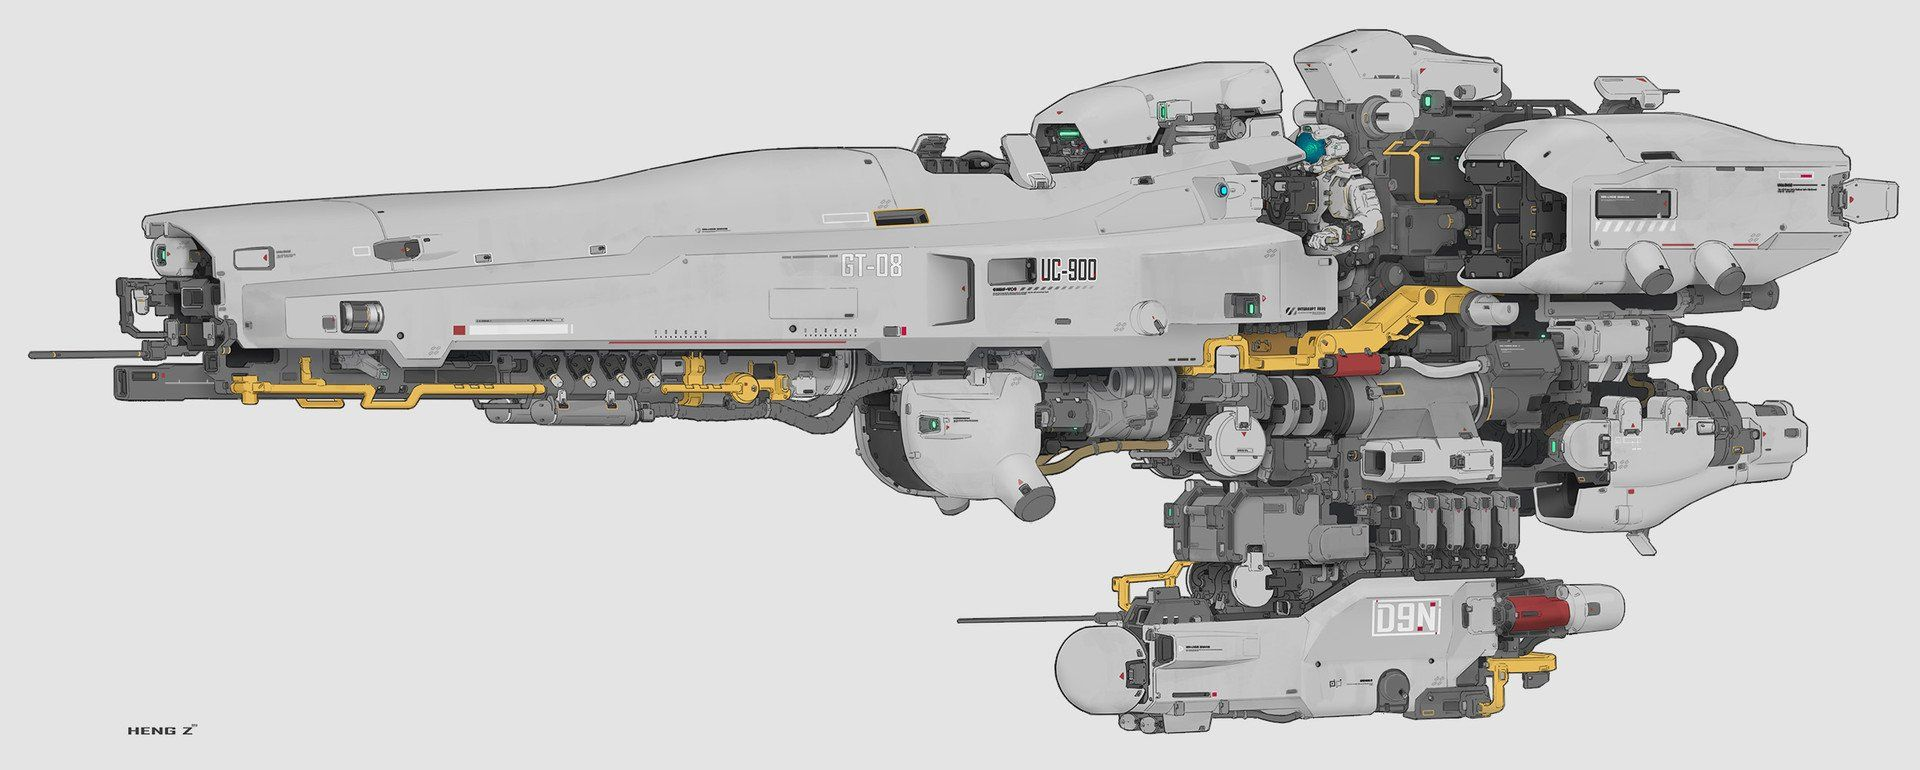 Heng Z On In 2020 Spaceship Art Concept Ships Spaceship Design